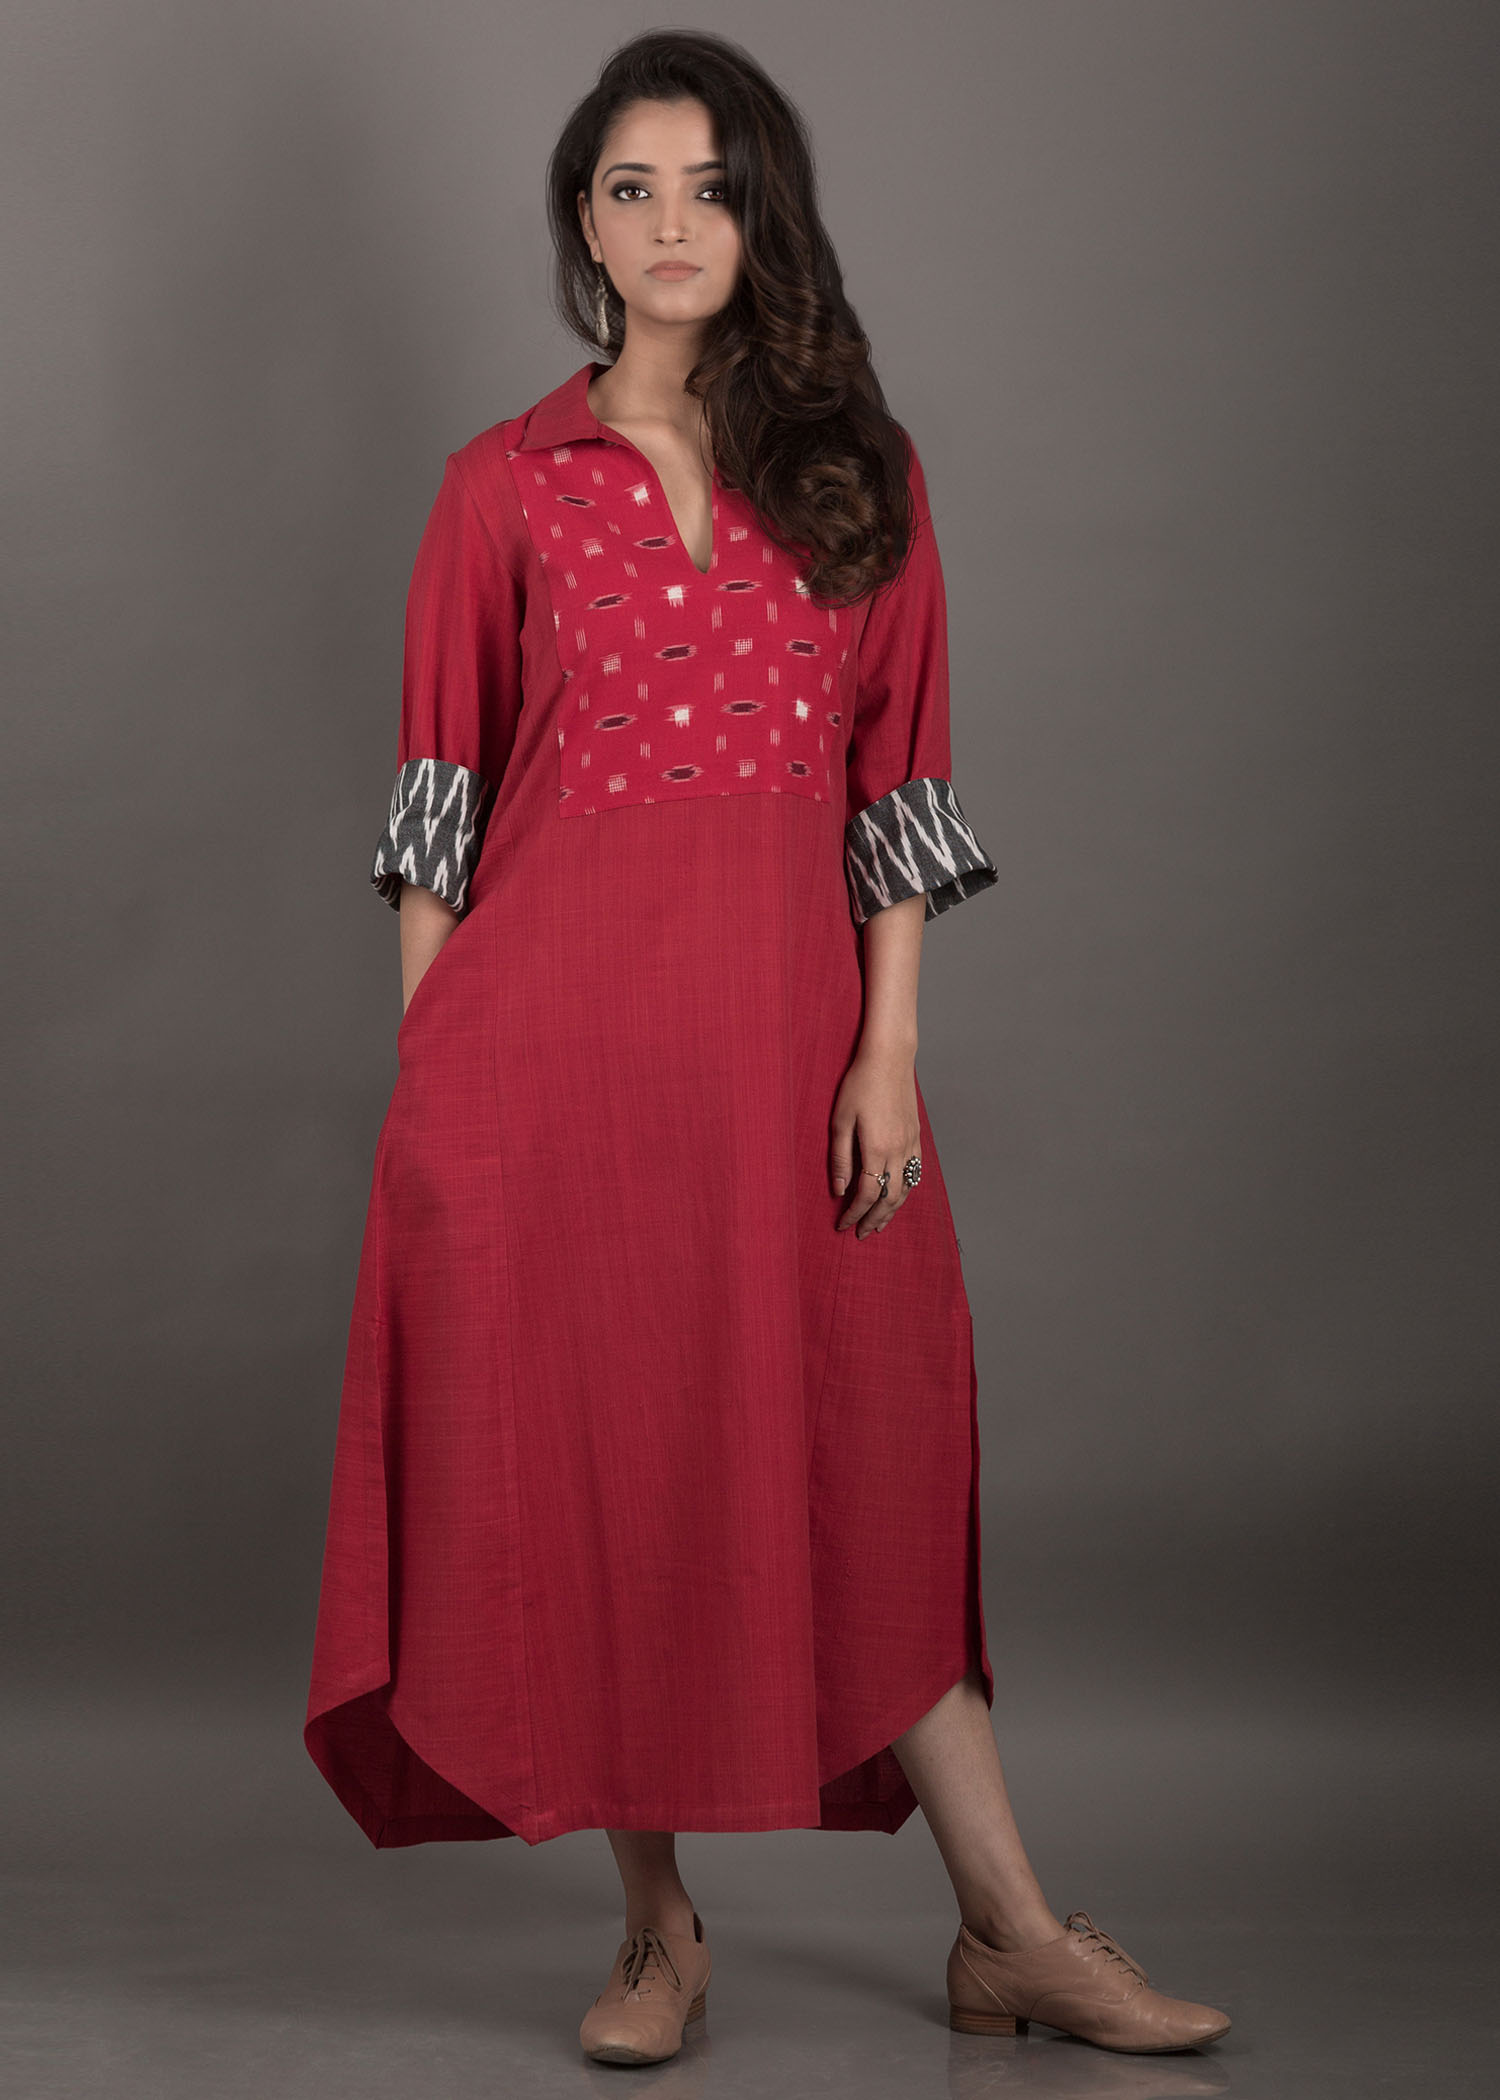 Red Handwoven Cotton Dress/Kurta with with Ikat Yolk and Cuffs